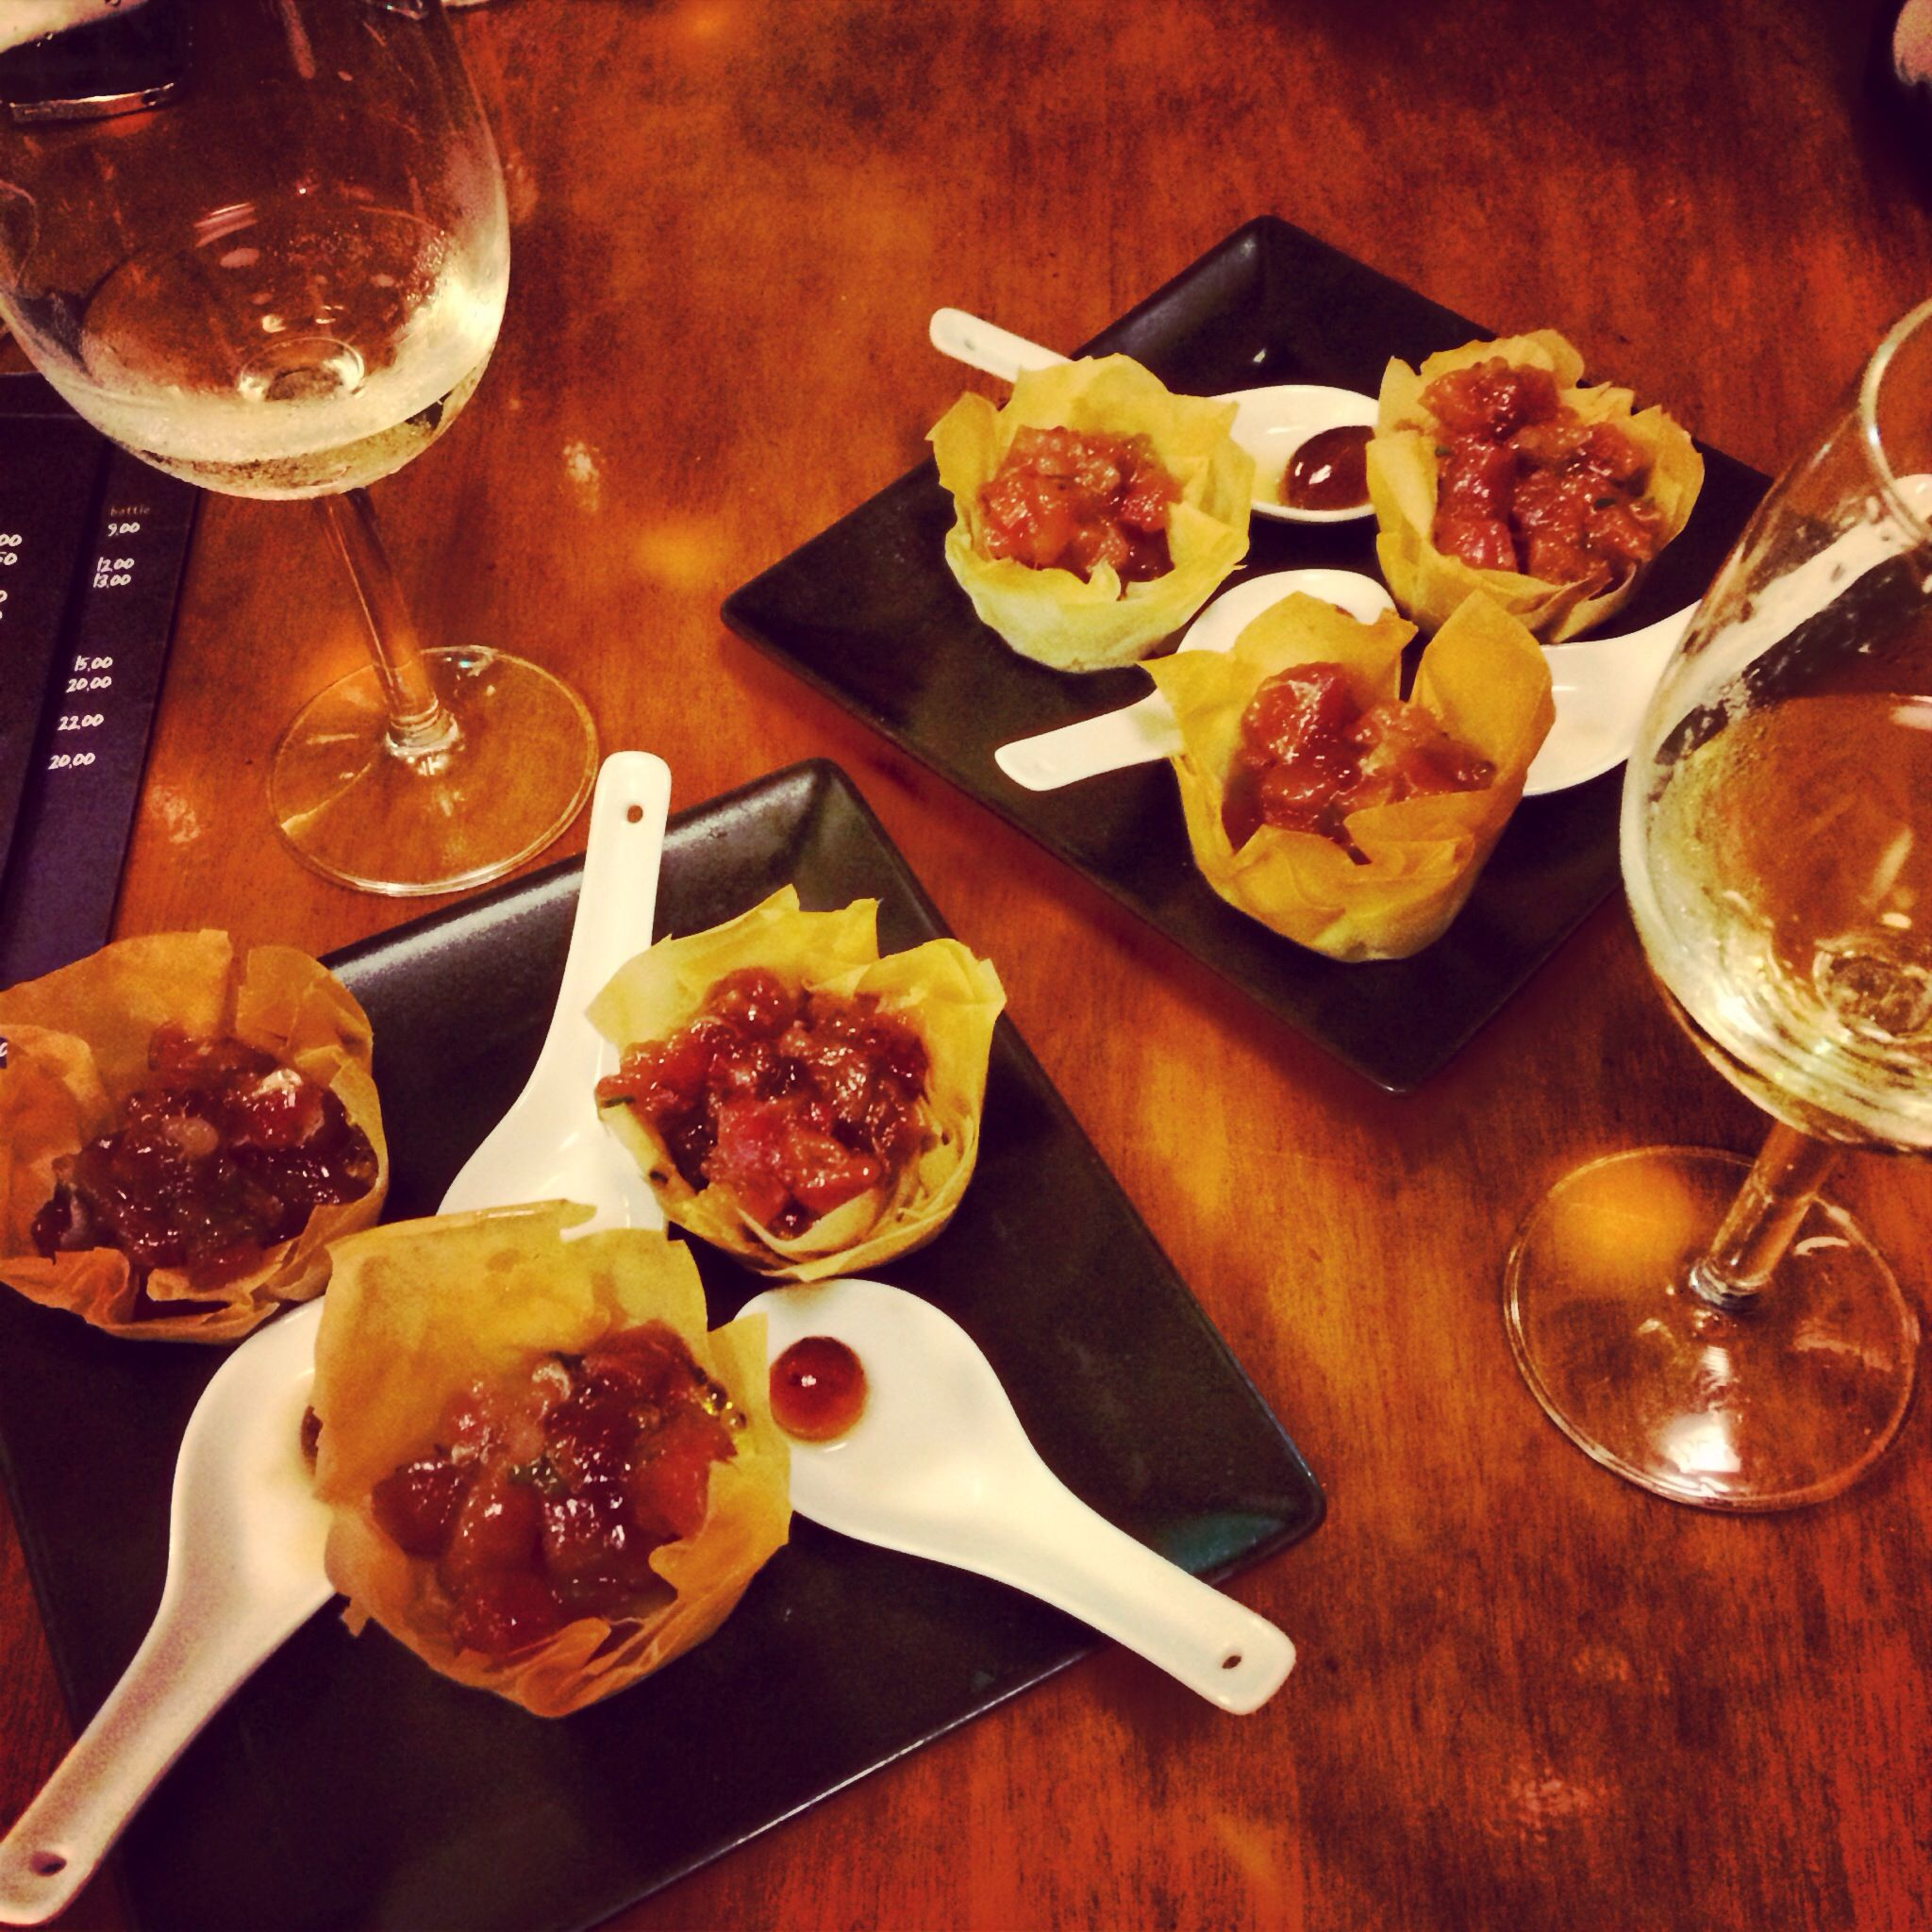 Buscant A Nemo Tapa De L Any 2013 De Catalunya Bar El Cable Sitges The Most Amazing Take On Tapas In Sitges Nattes